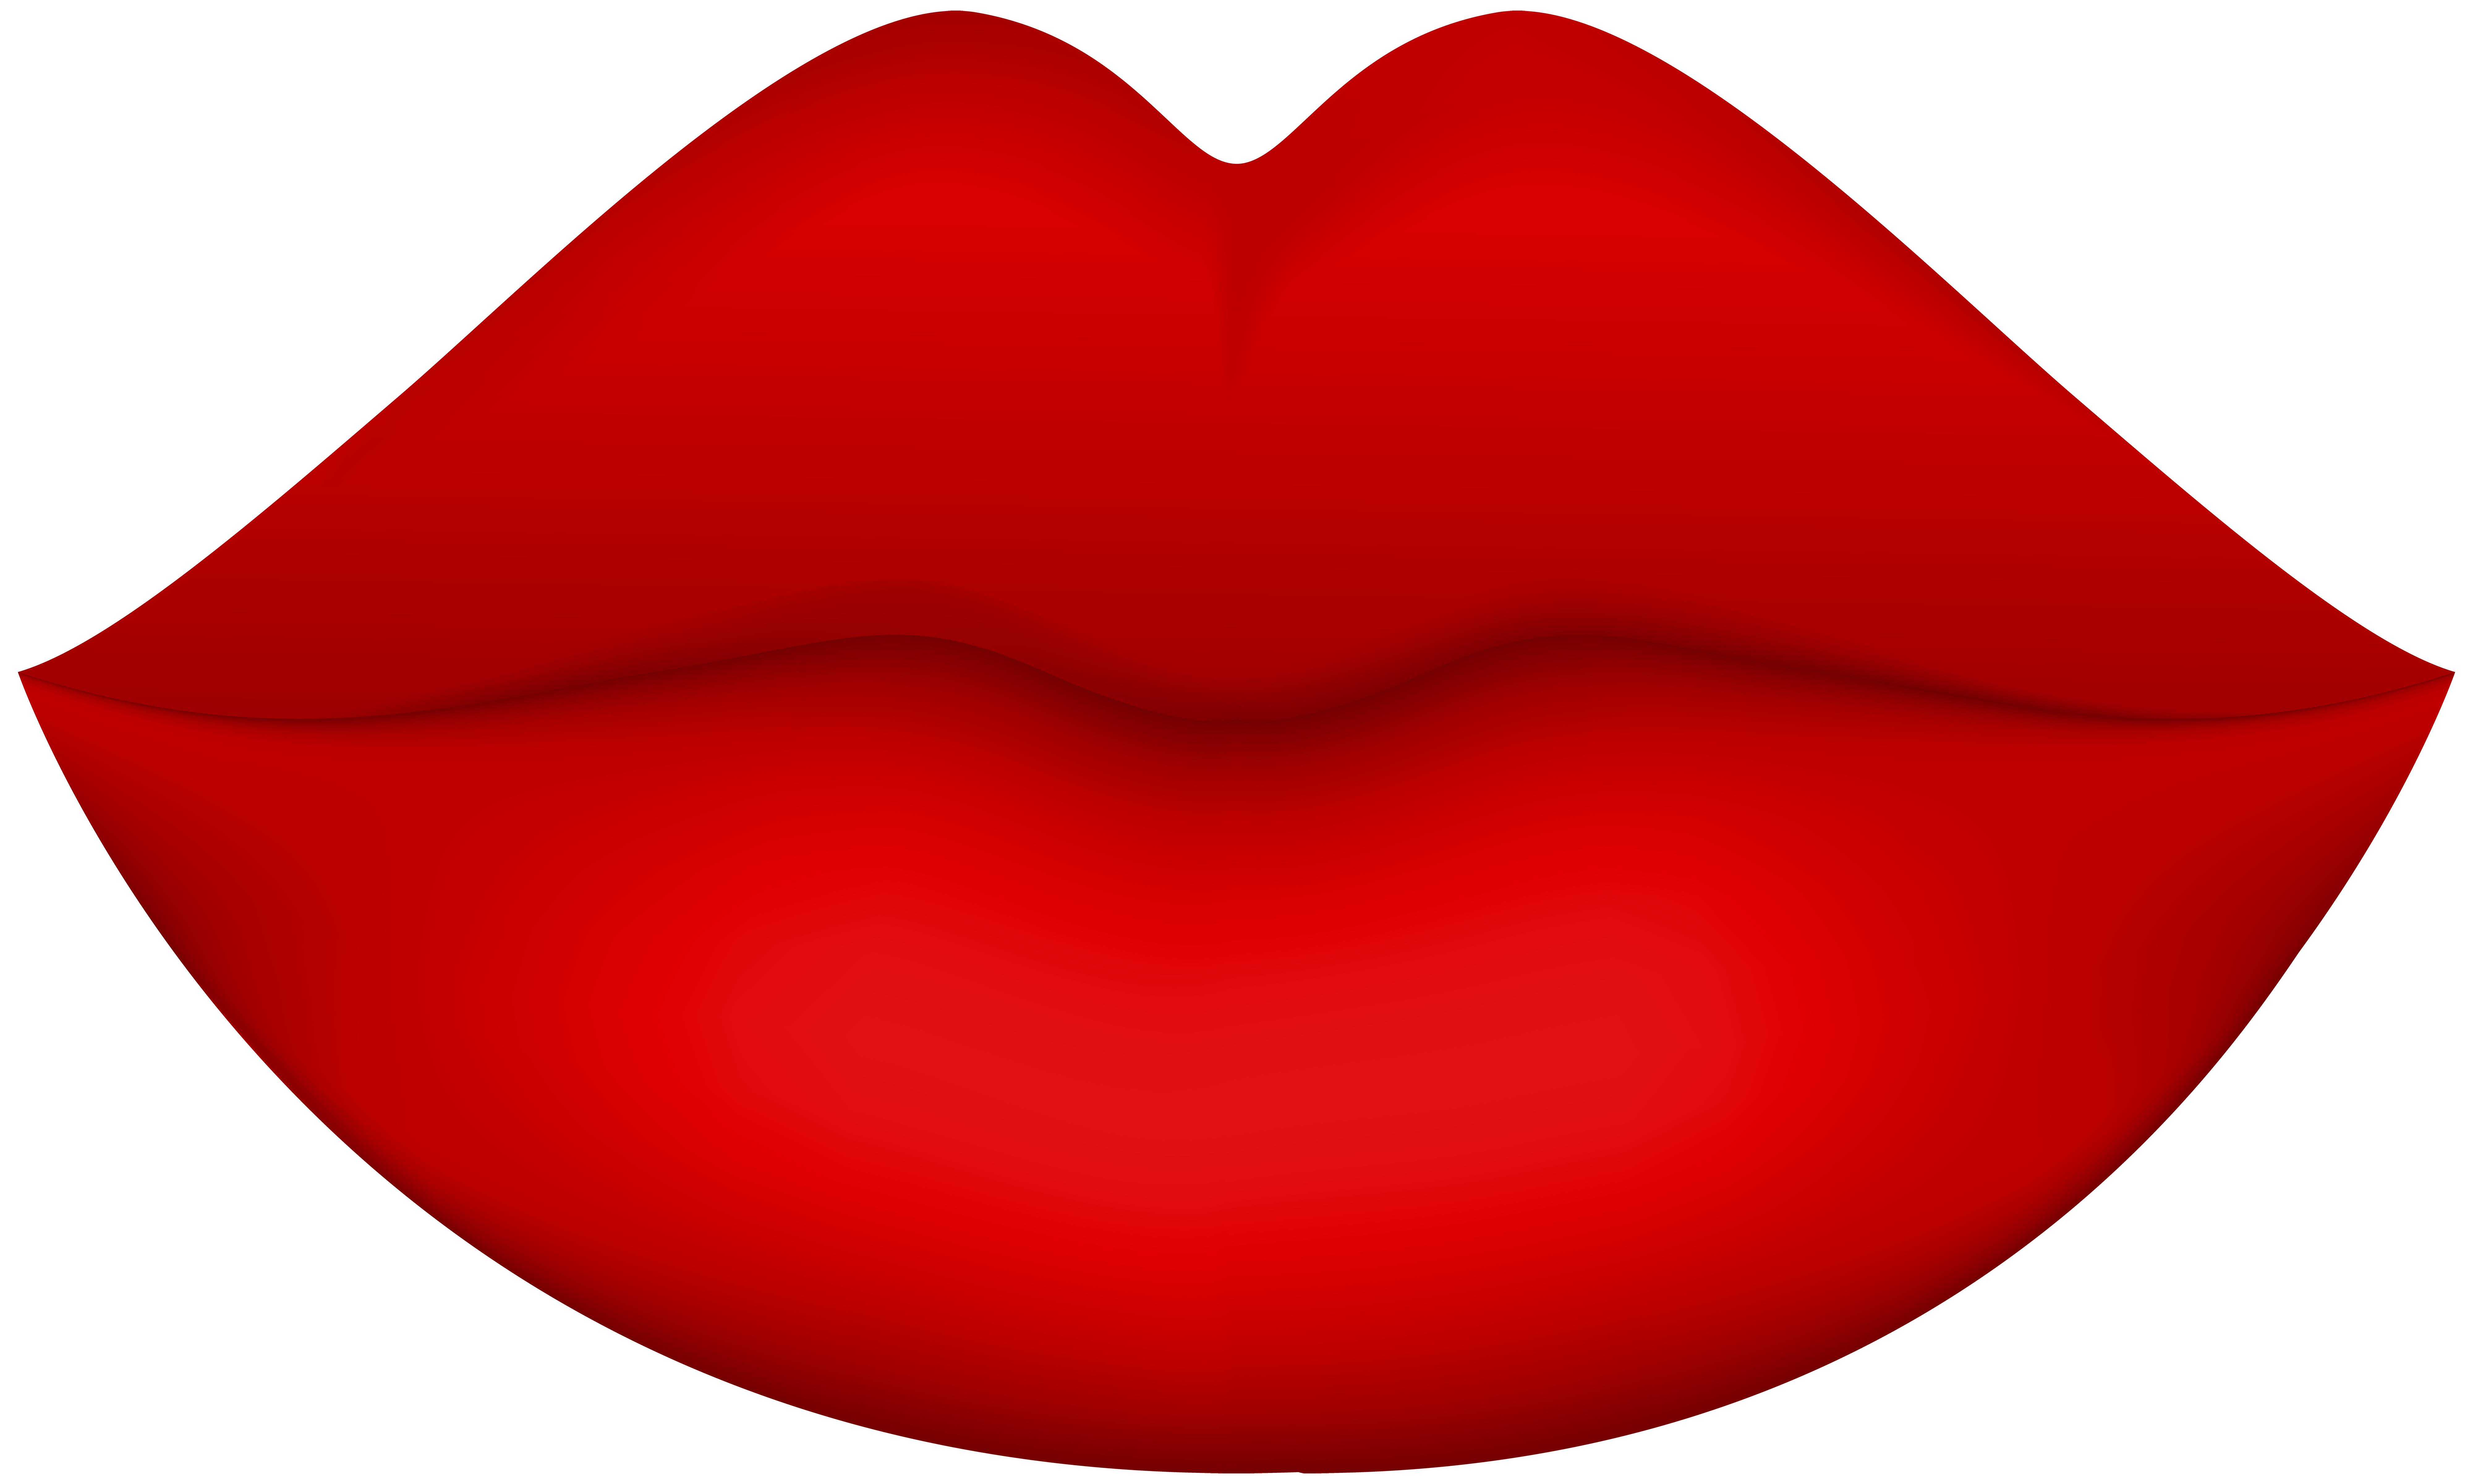 Lip clipart. Female red lips png